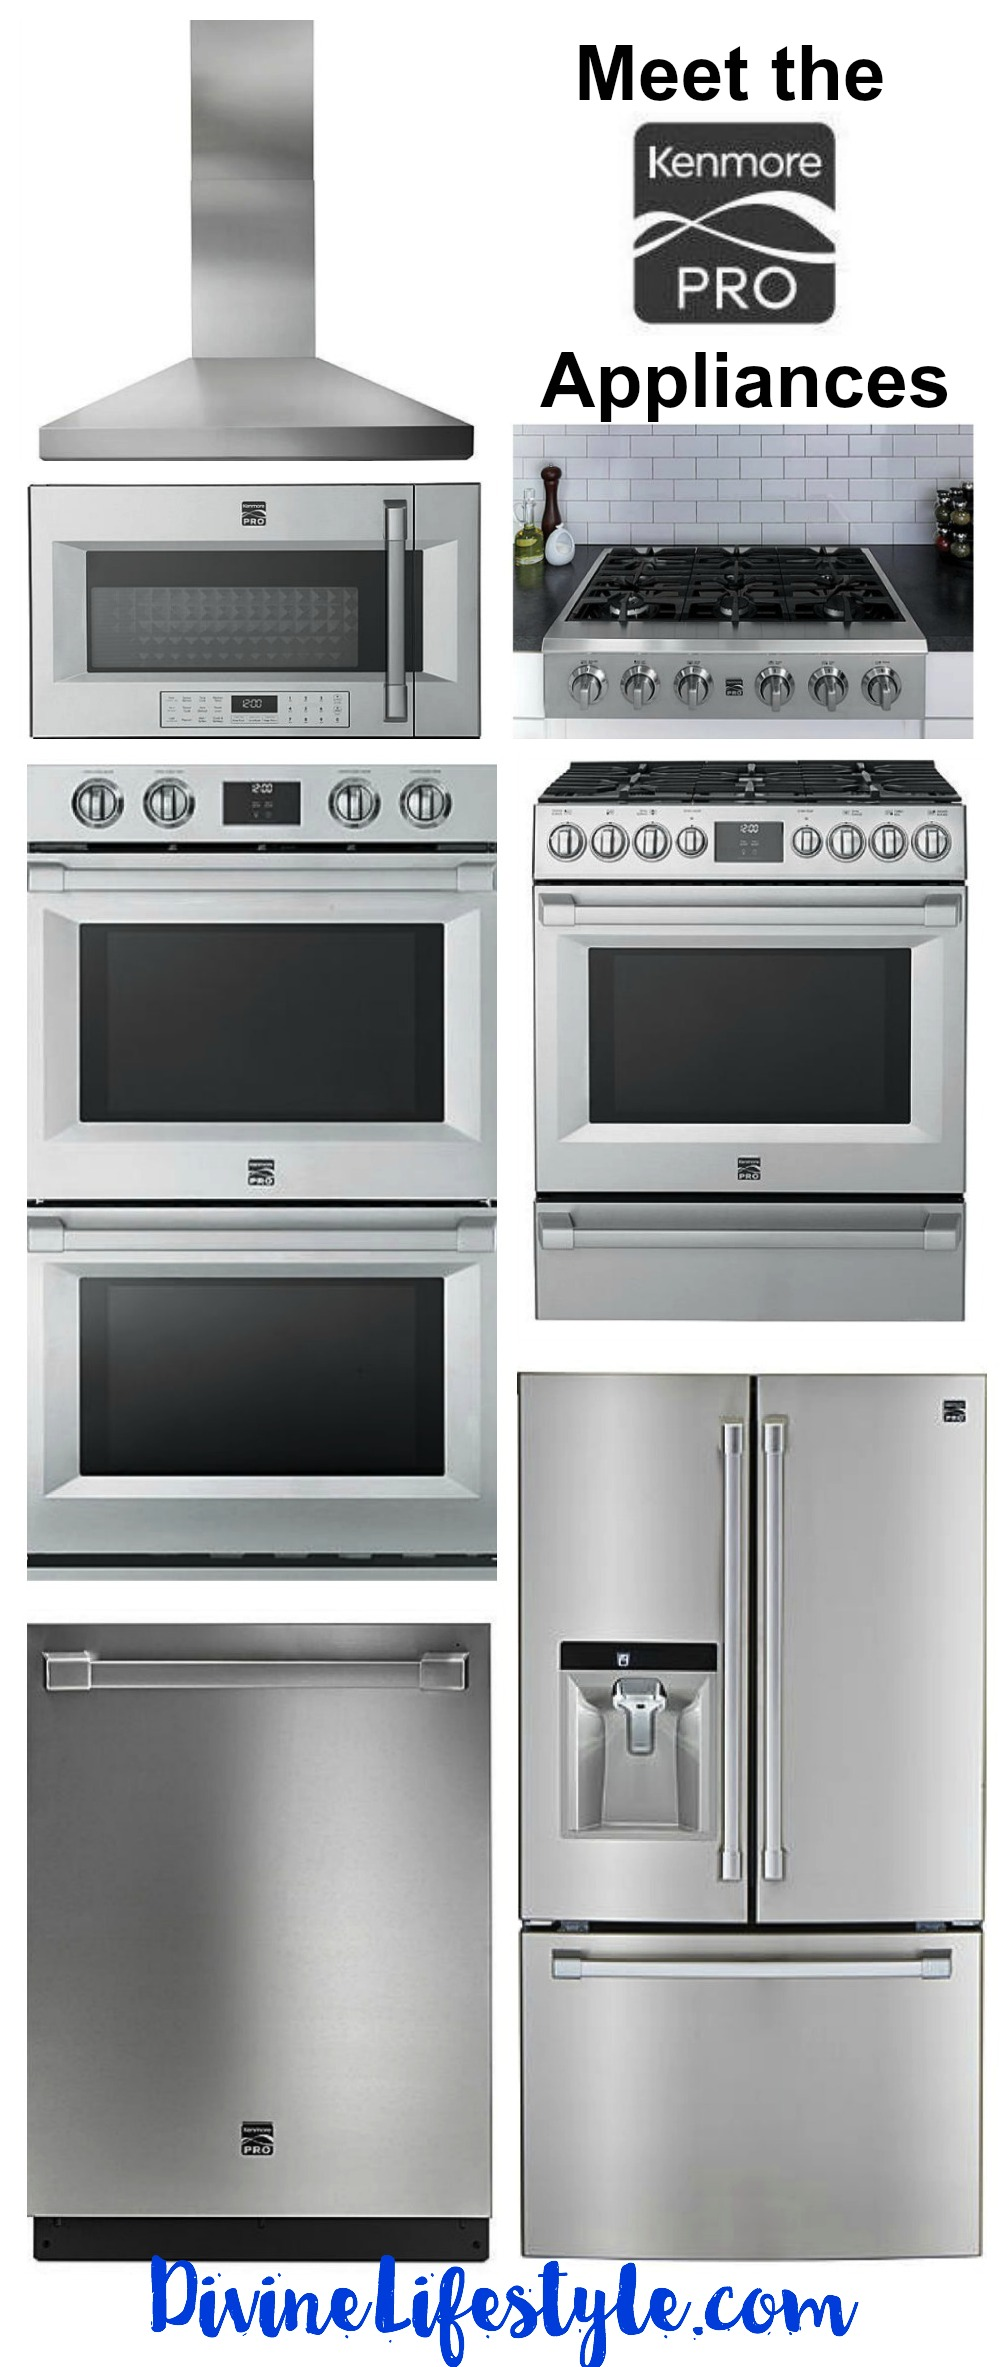 charming Kenmore Kitchen Appliances Reviews #4: Meet The Kenmore PRO Appliances | Divine Lifestyle